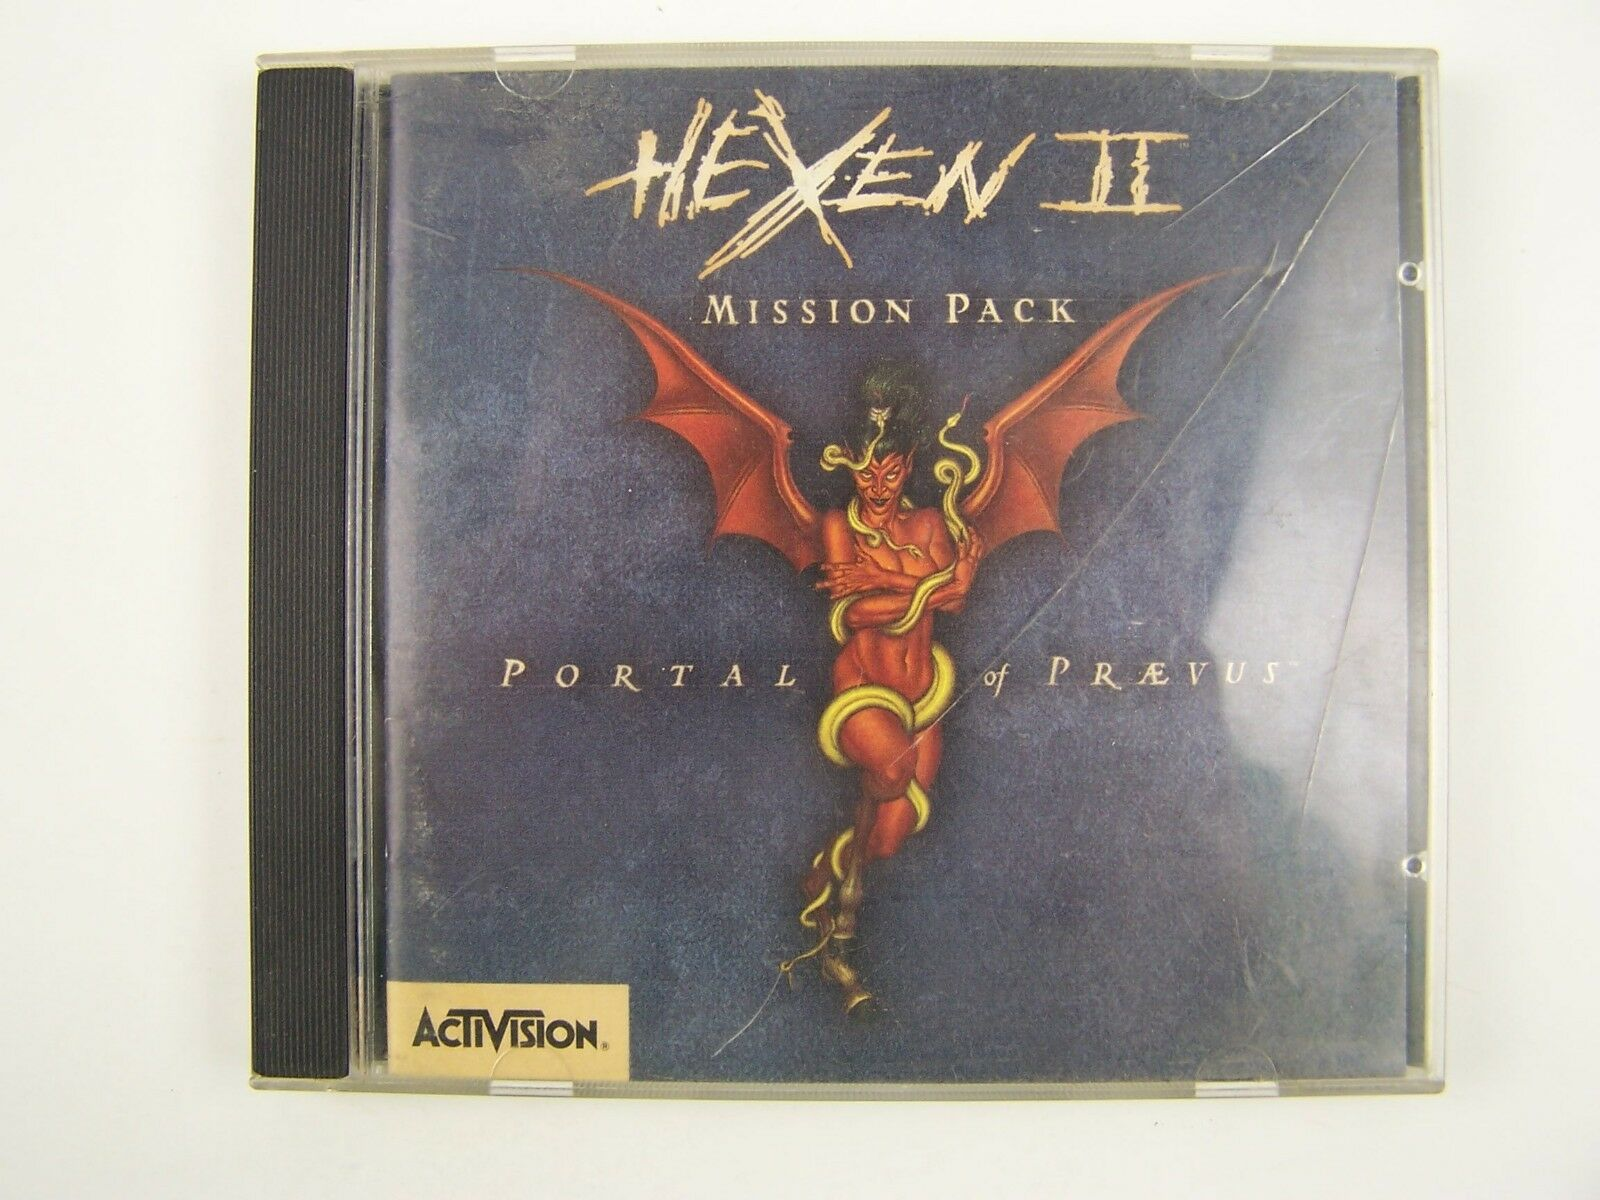 Hexen II Mission Pack: Portal of Praevus PC CD-ROM Game